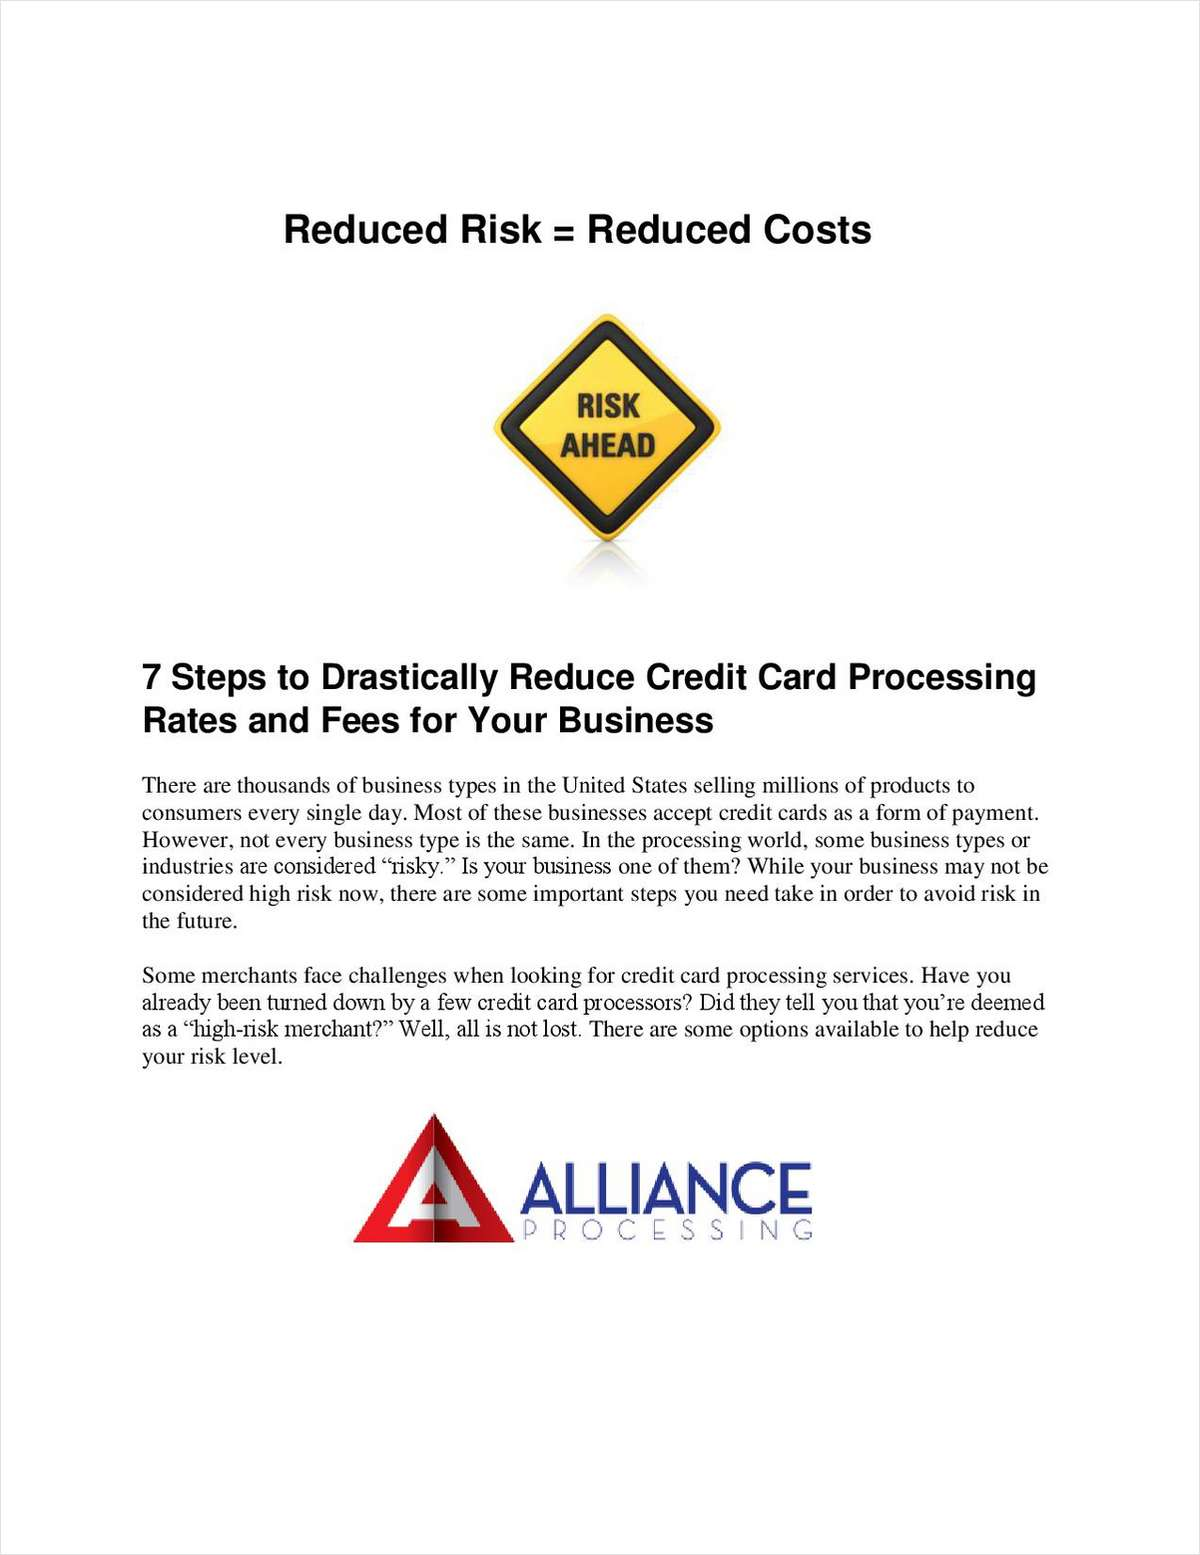 7 Steps to Drastically Reduce Credit Card Processing Rates and Fees for Your Business